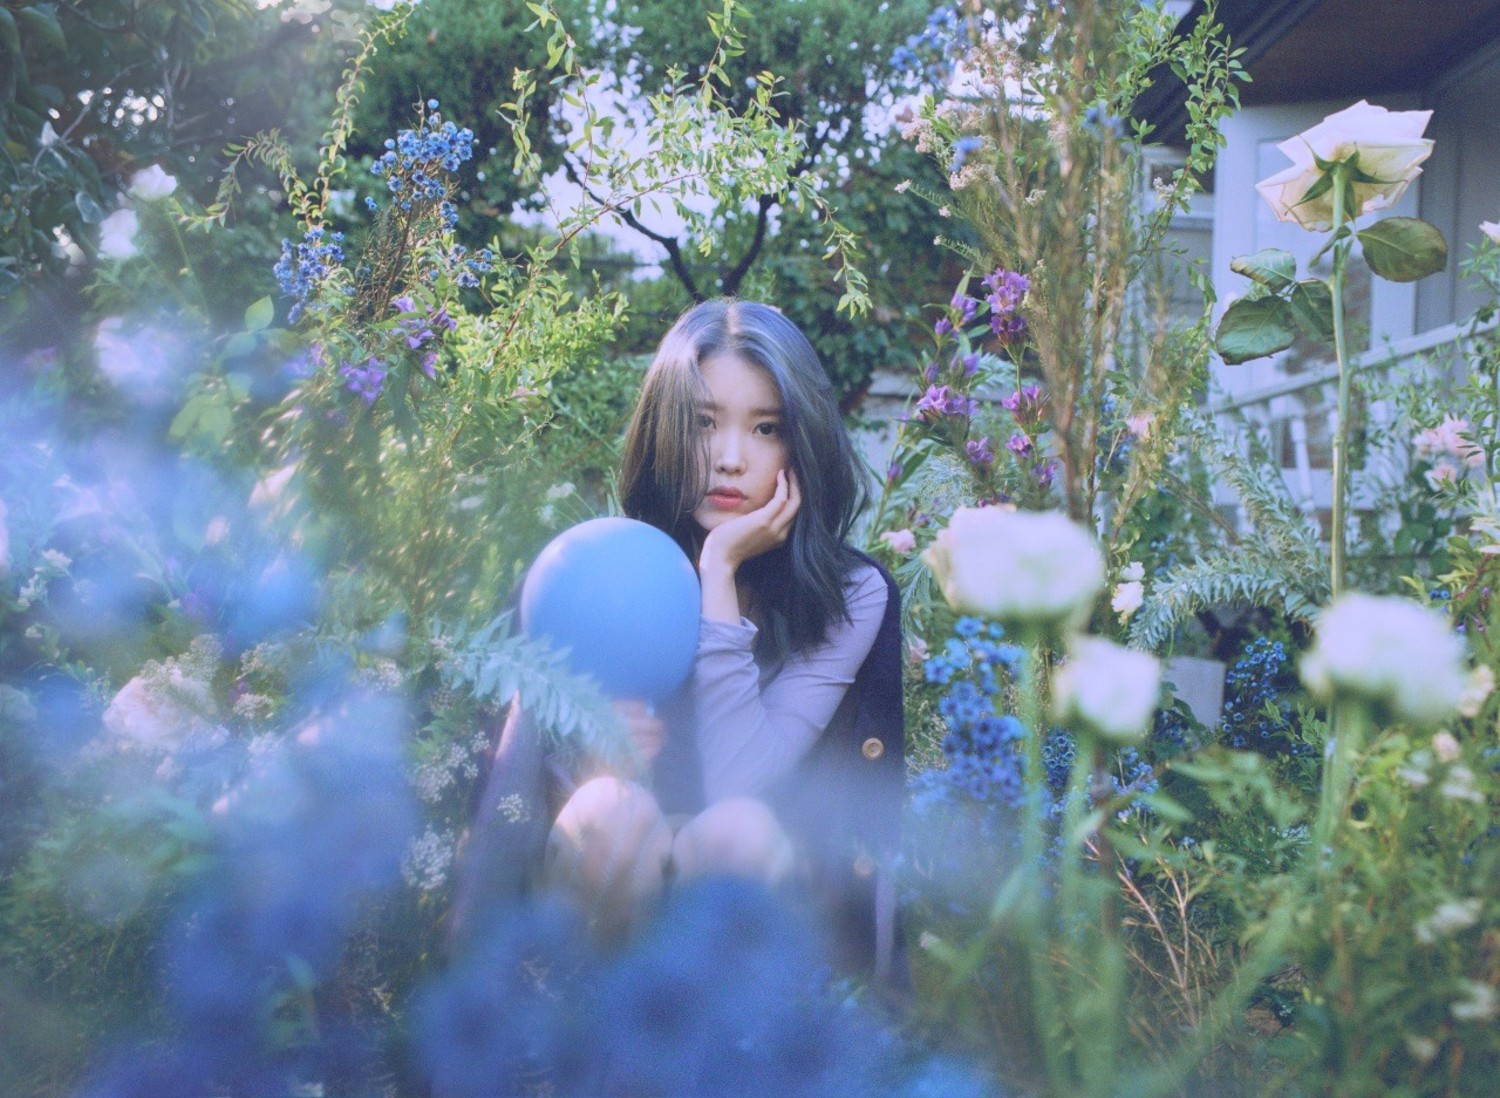 19' IU_LOVE POEM 5th mini album